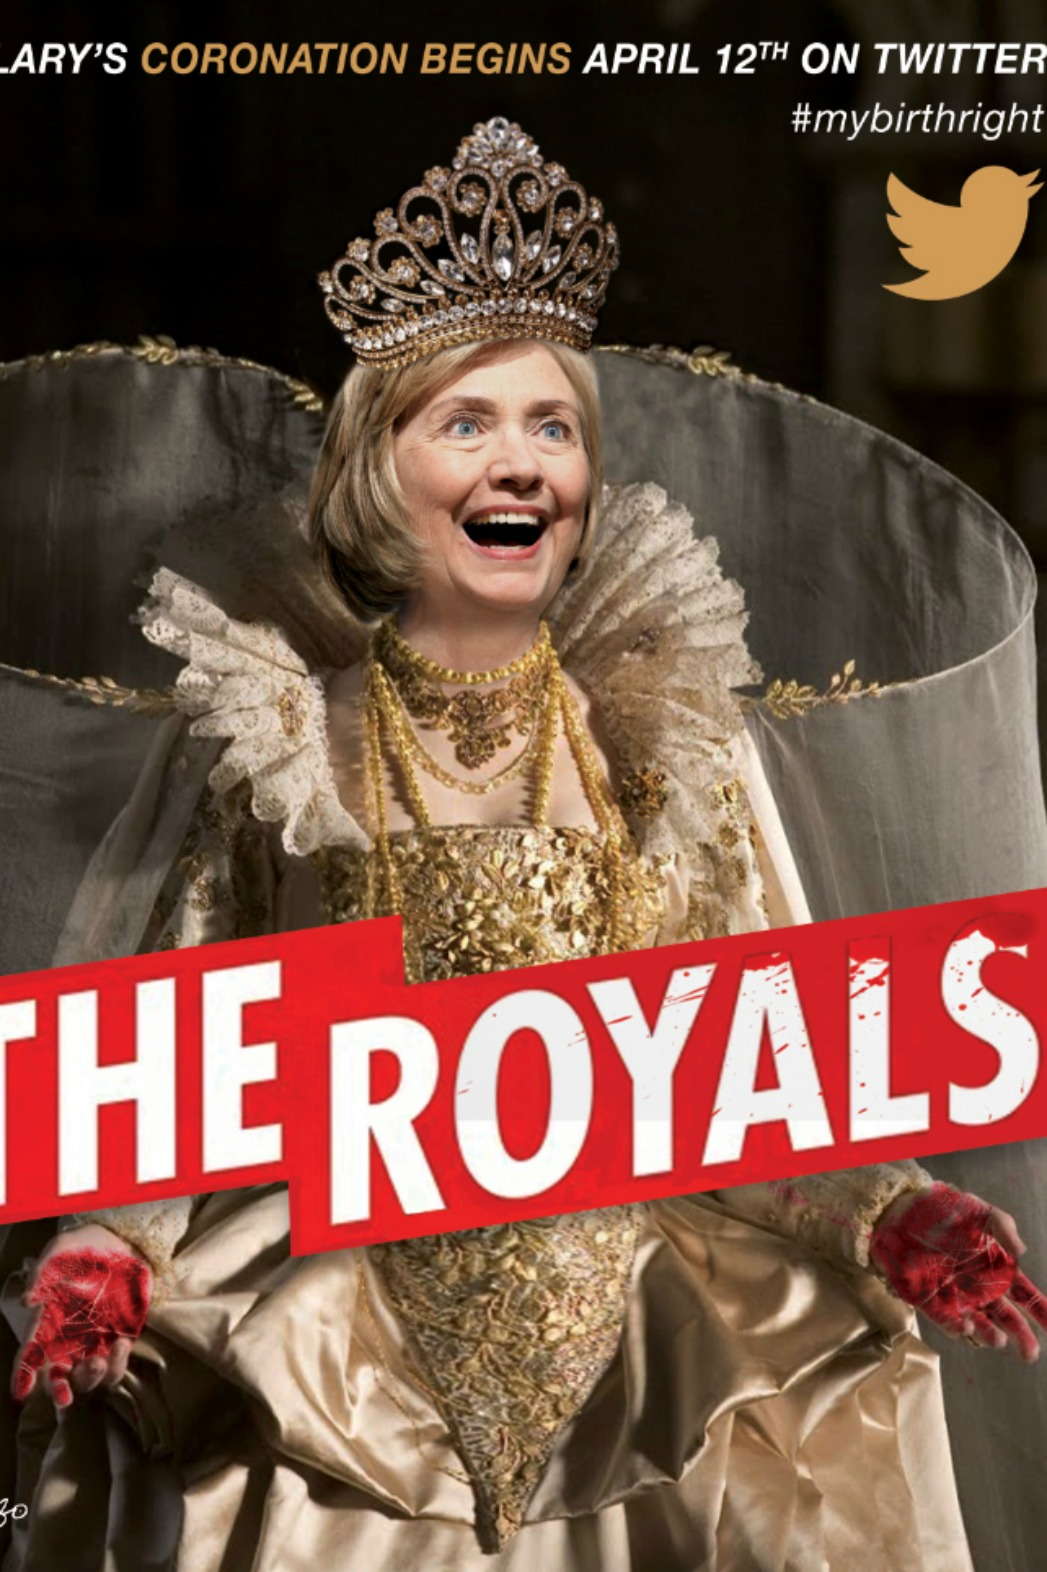 Hillary Clinton The Royals Posters - P 2015